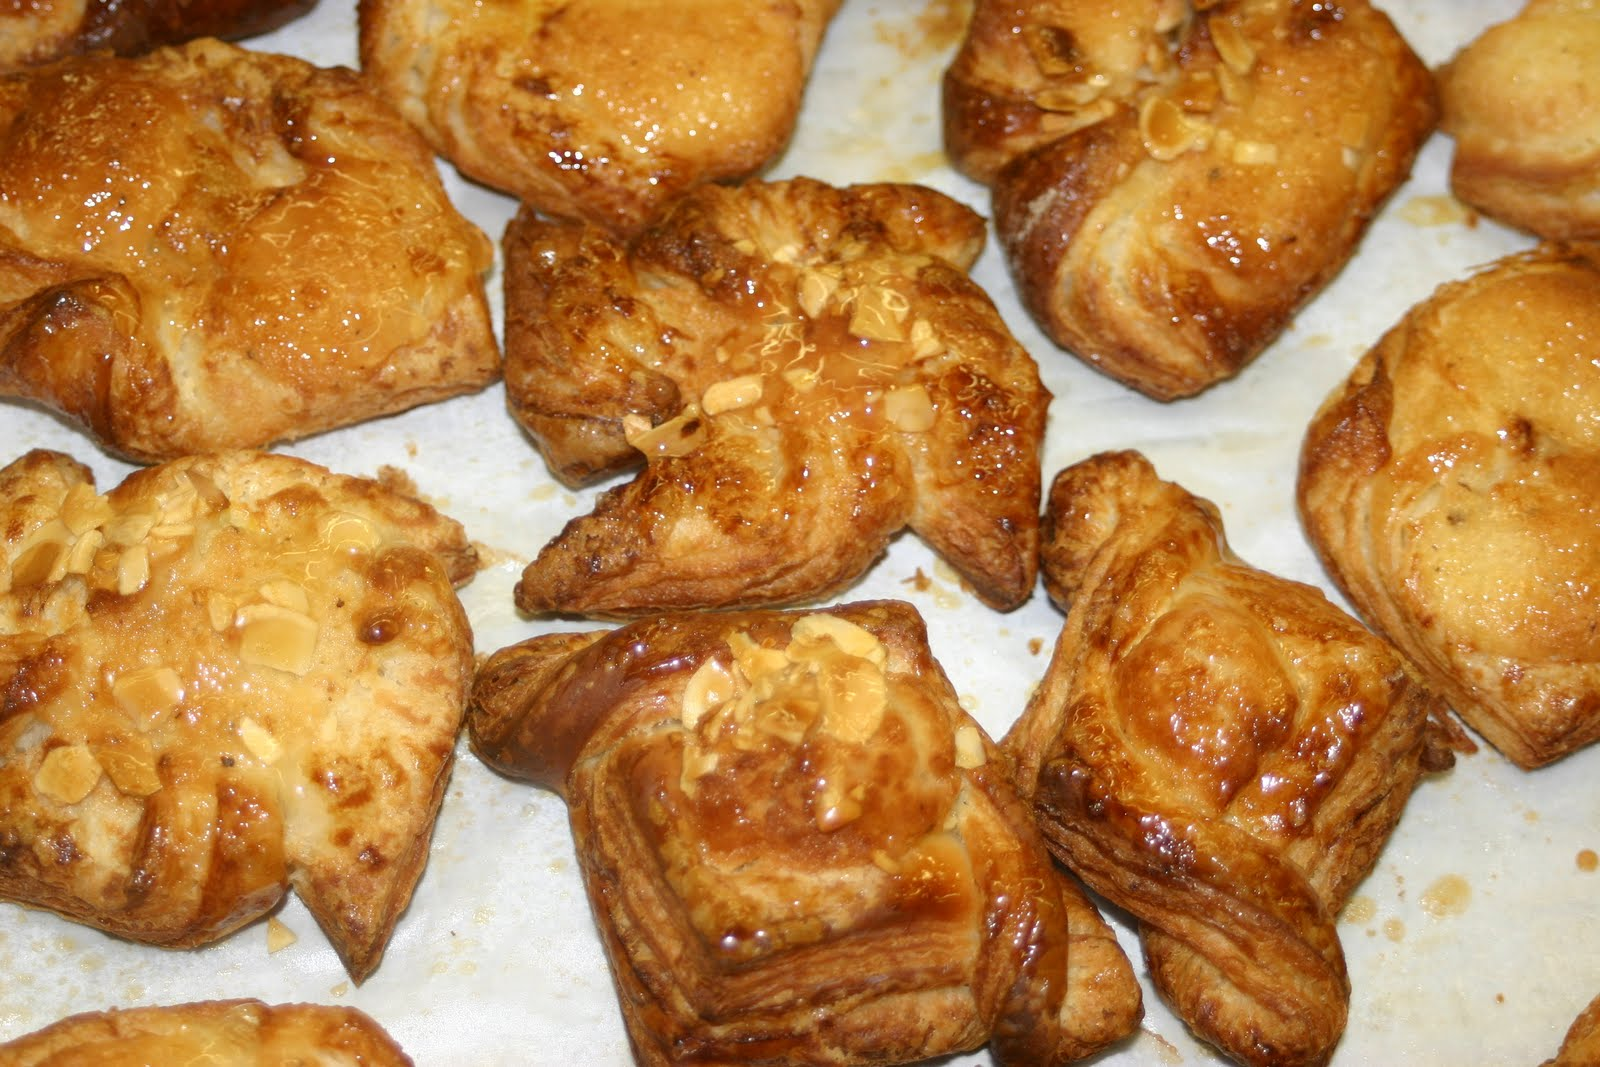 Confectionery Tales Breakfast Pastries Day 3